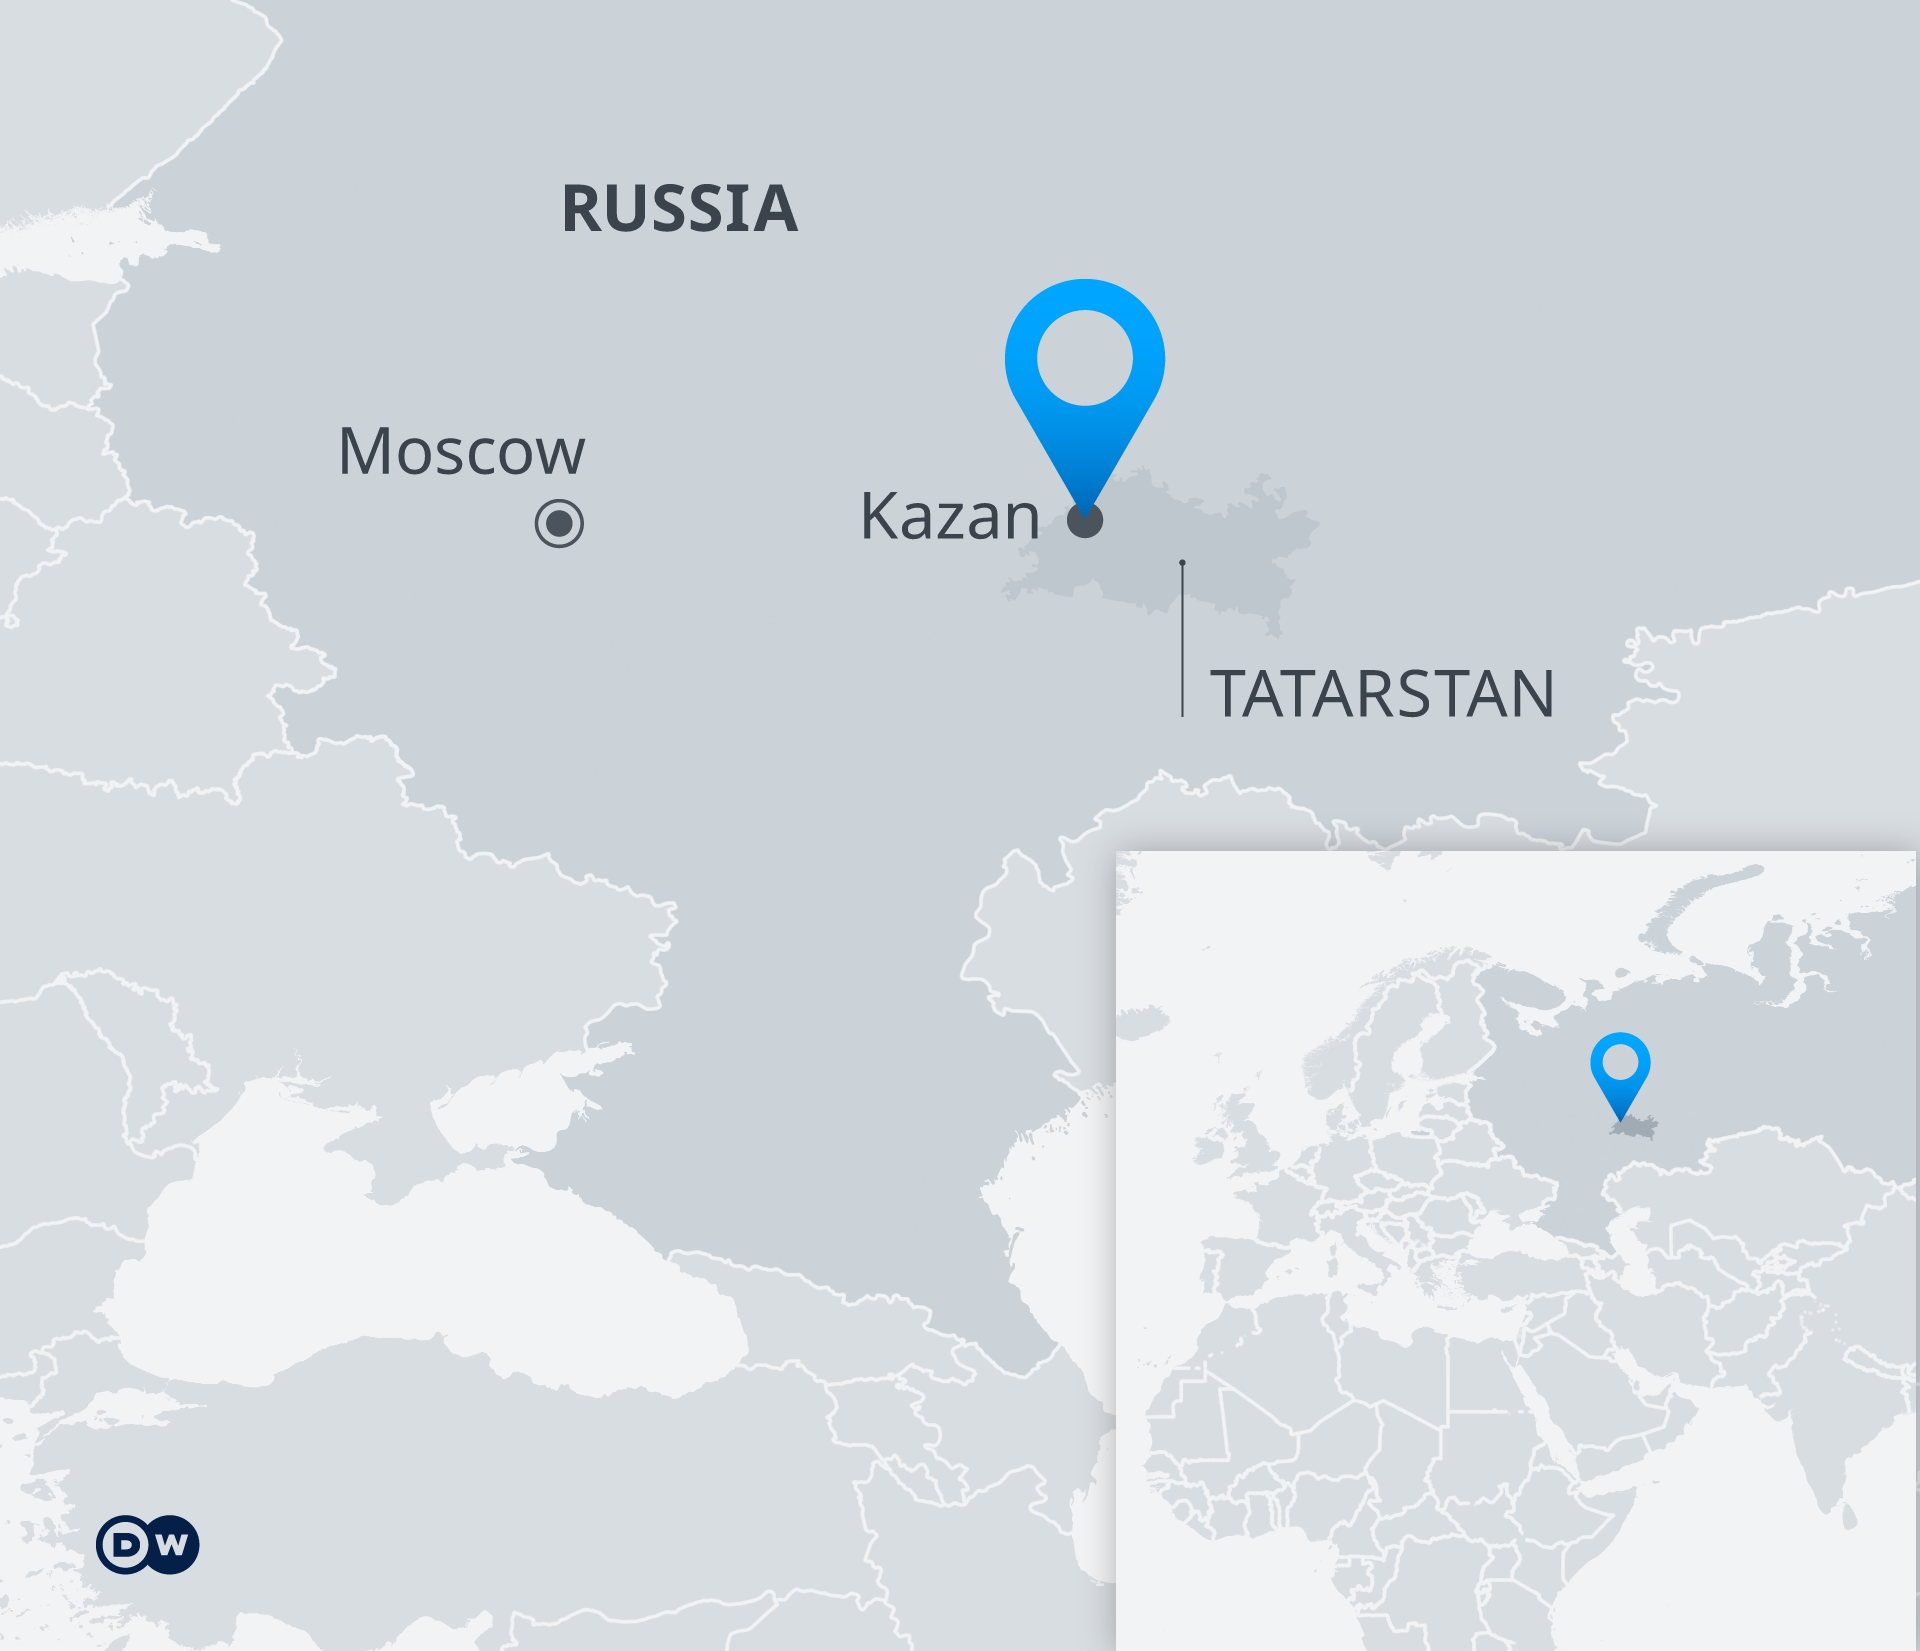 Map indicating location of Kazan in Russia